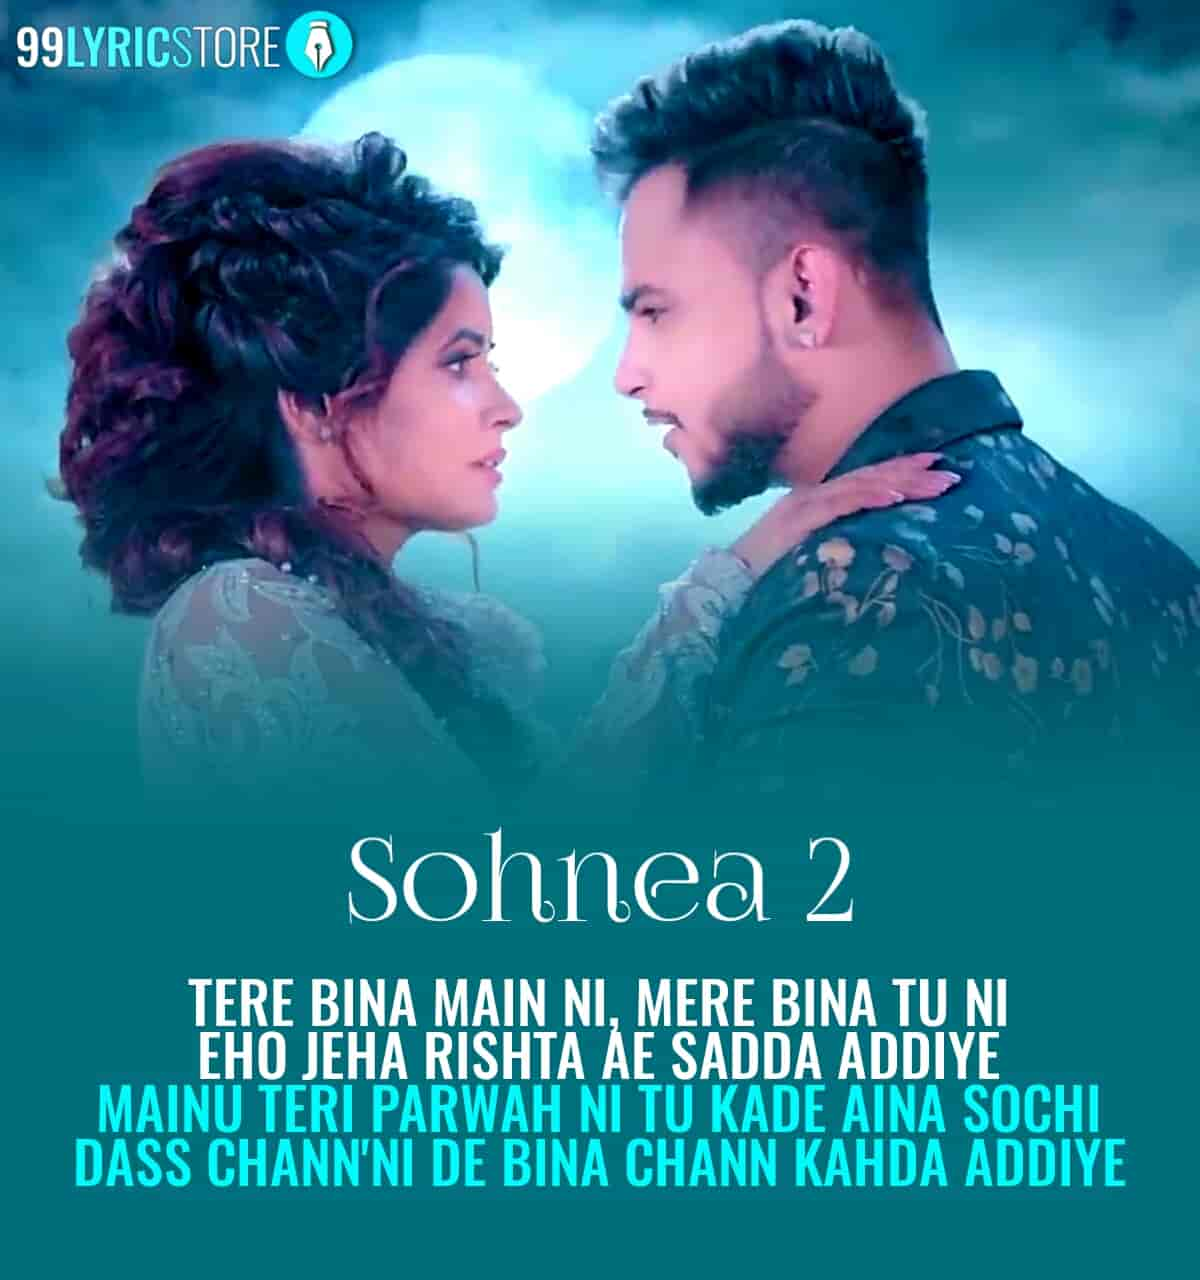 Sohnea 2 Punjabi song sung by Millind Gaba and Miss Pooja